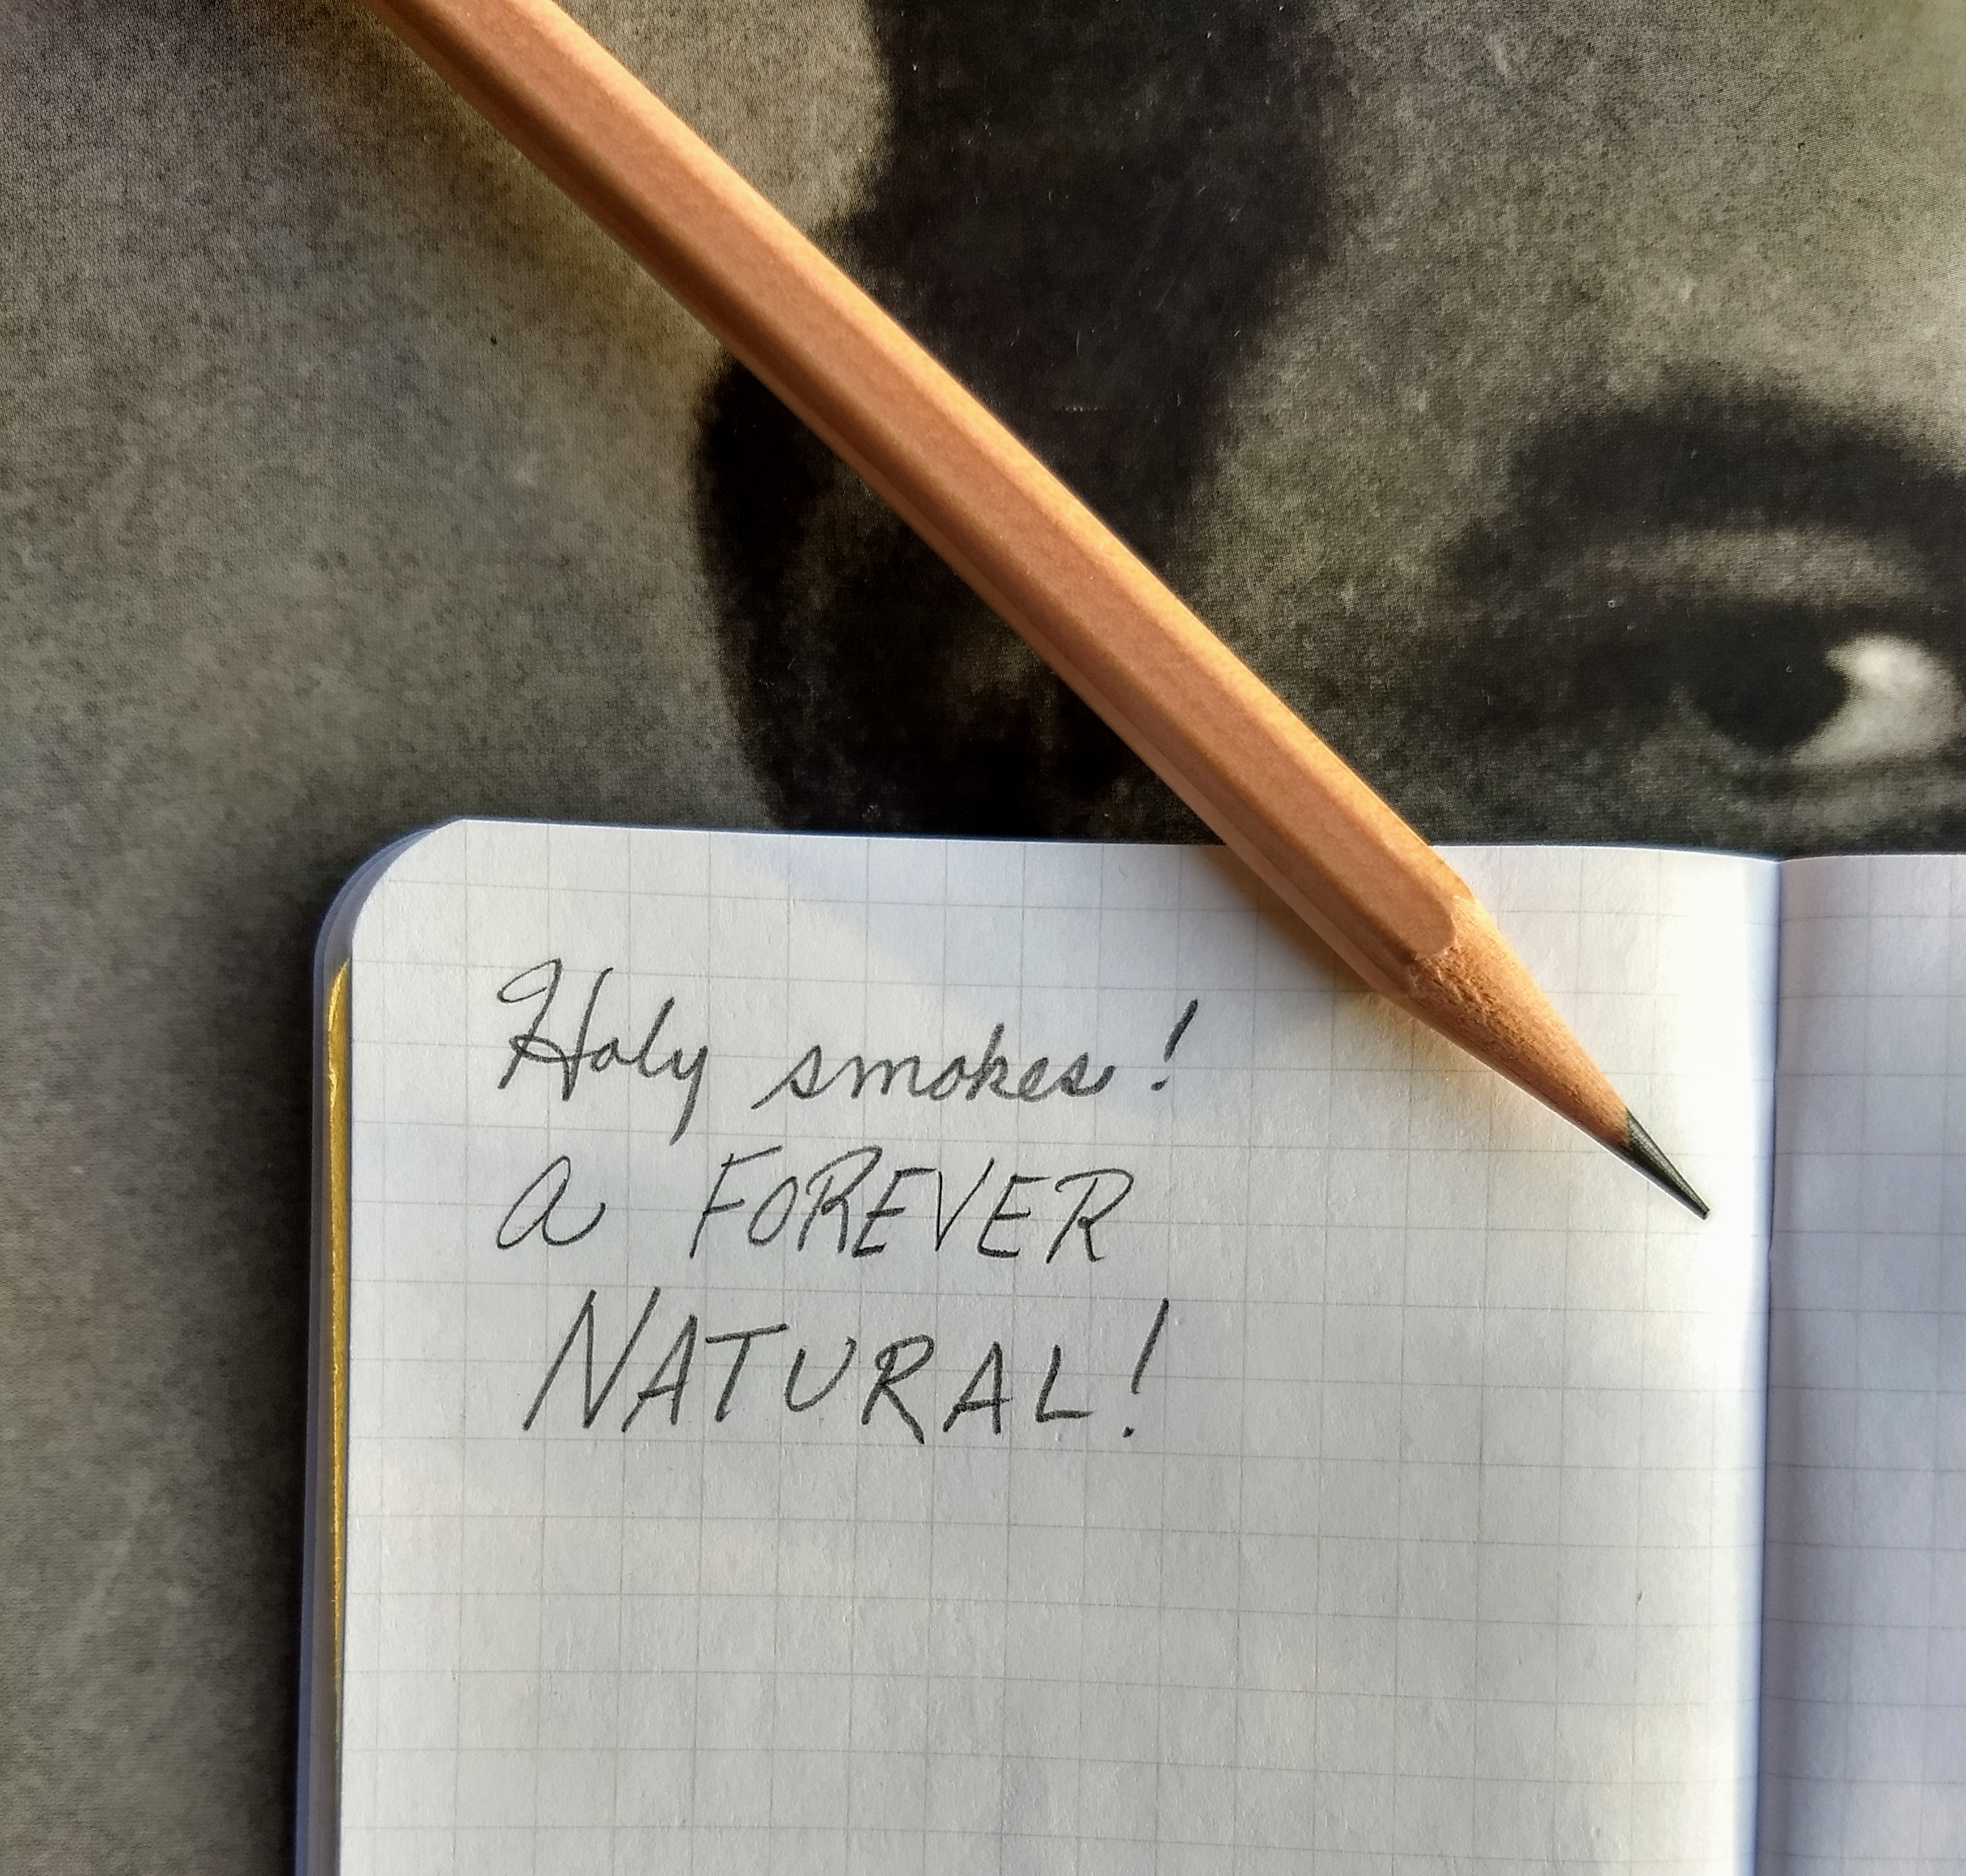 Blackwing Natural: Extra Firm and Kinda Naked  – Pencil